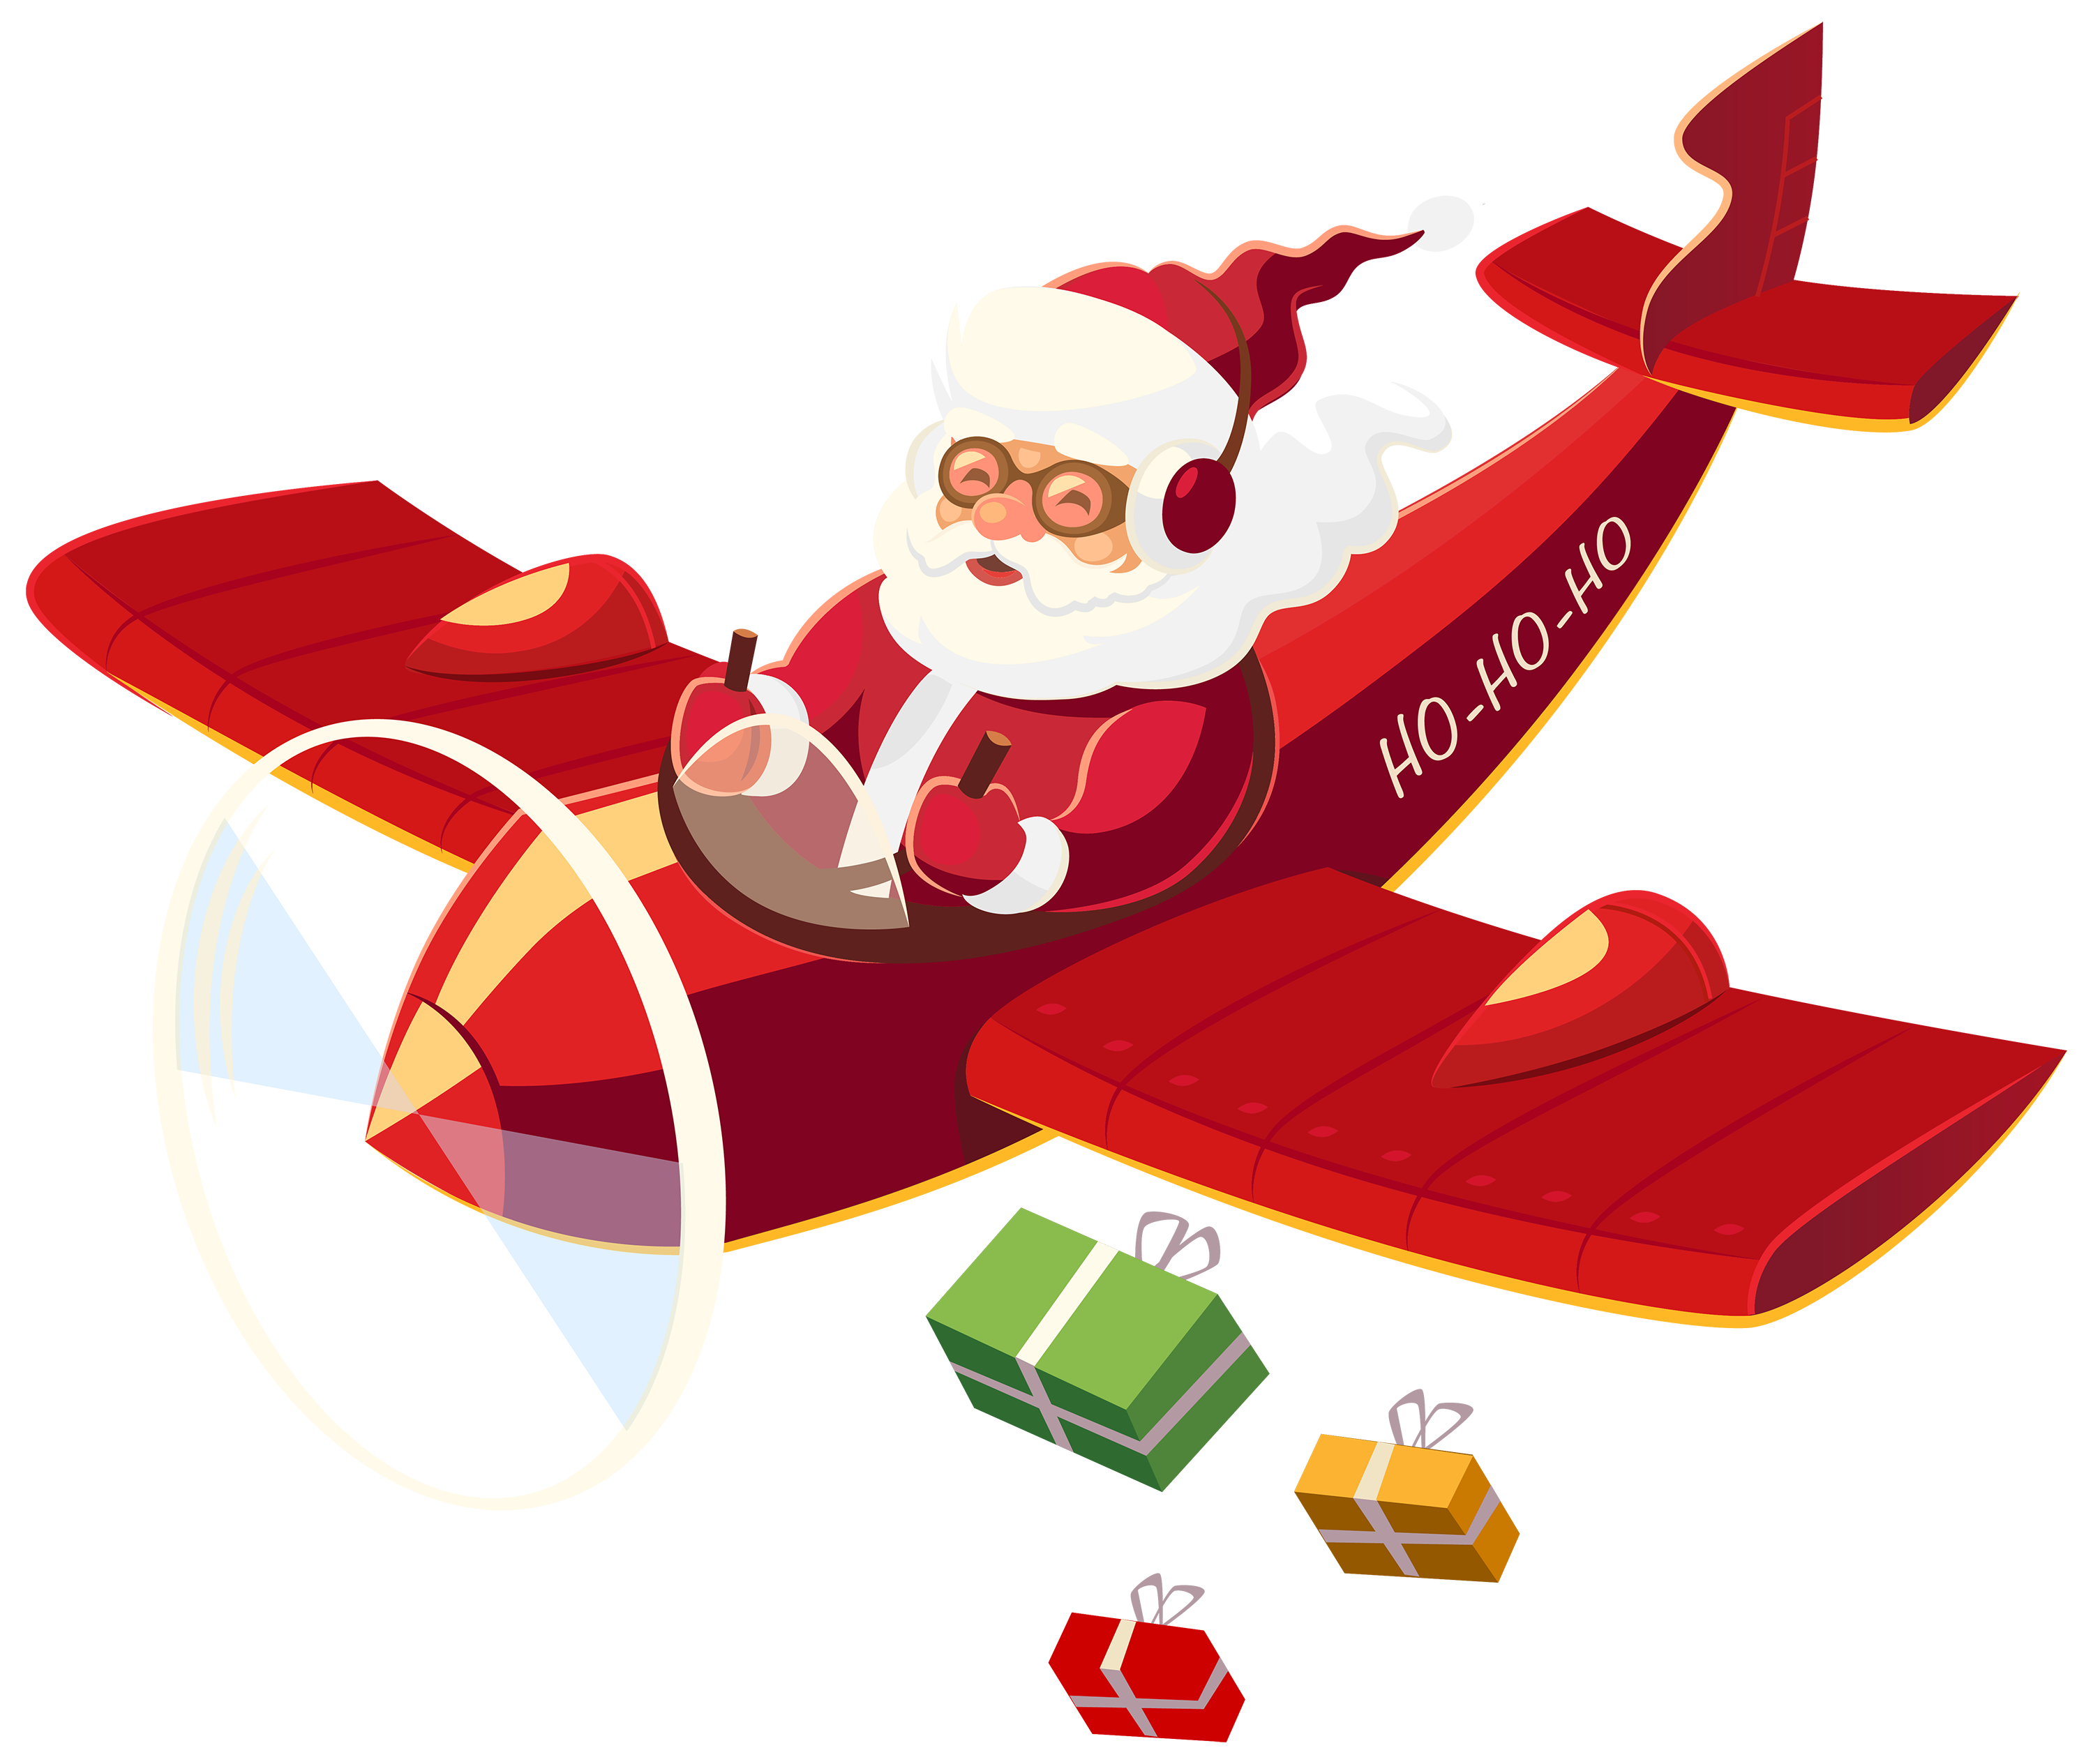 Website clipart homepage. Santa claus with plane